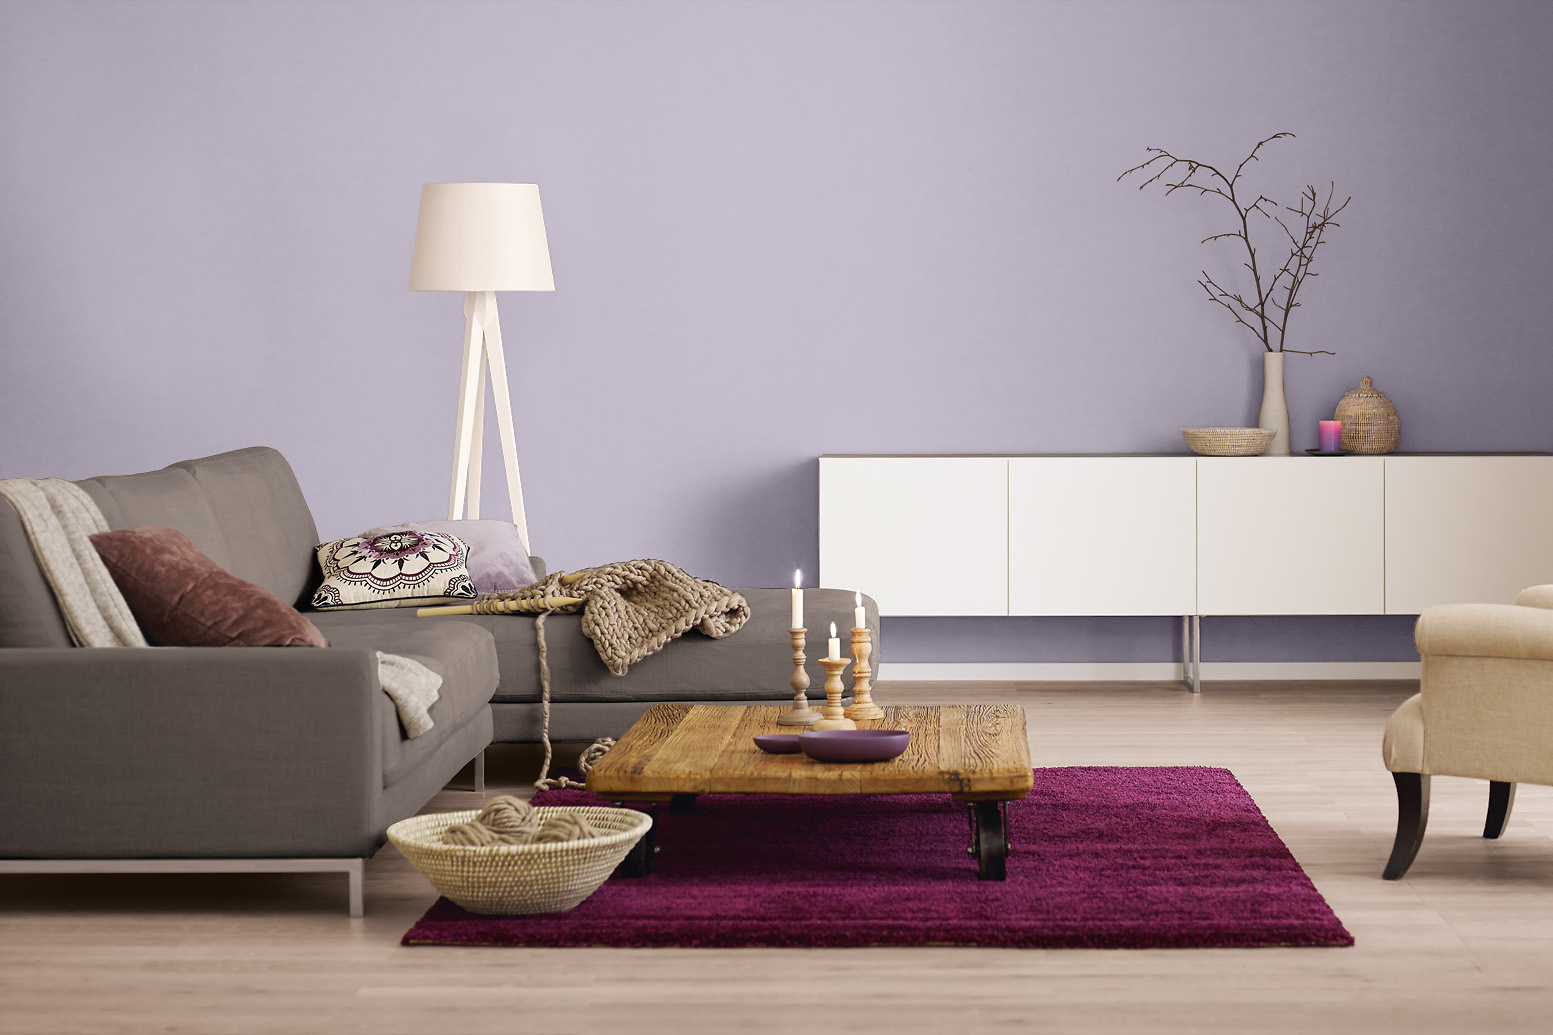 innenfarbe in grau lila streichen alpina farbrezepte edles mauve alpina farben. Black Bedroom Furniture Sets. Home Design Ideas